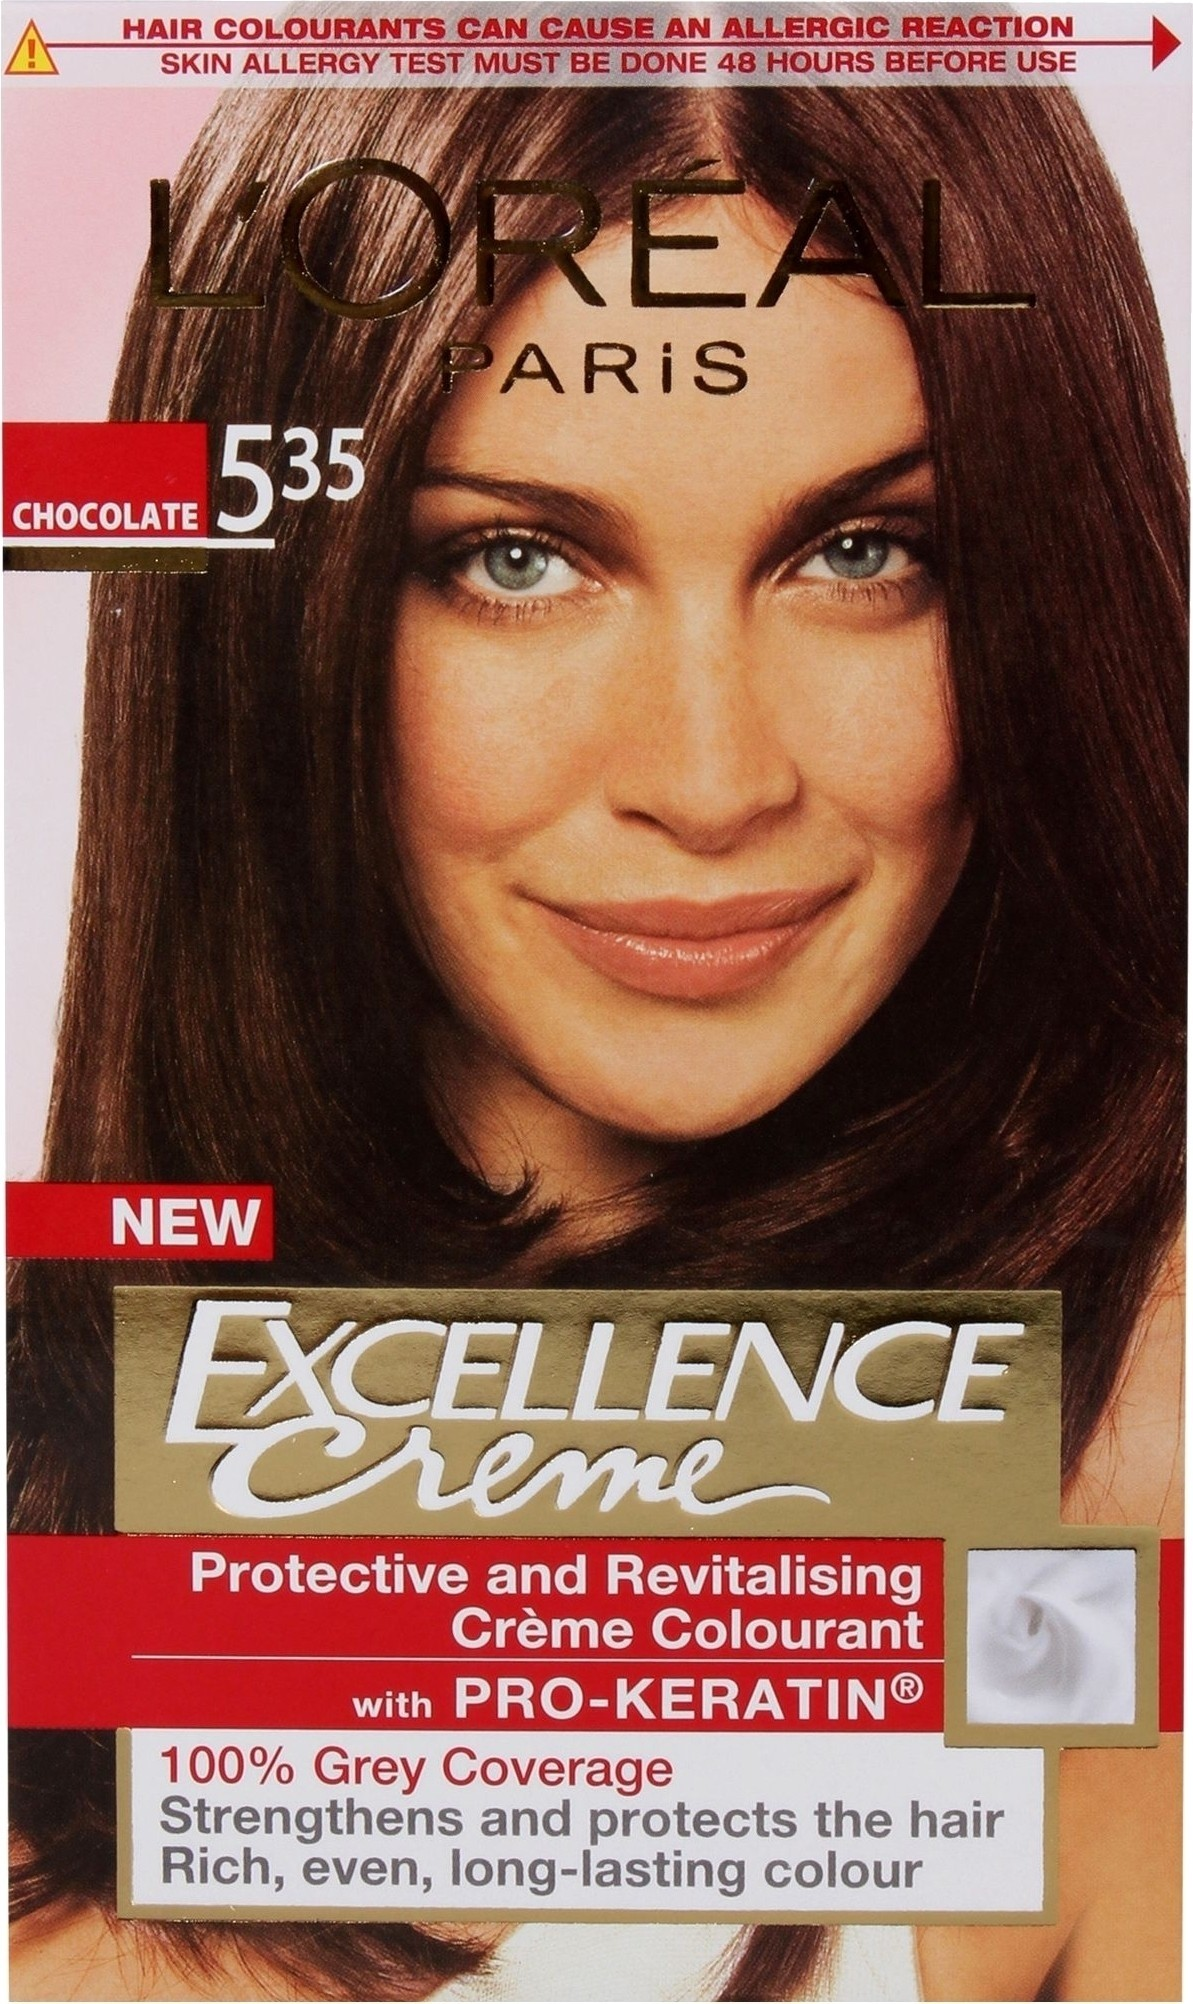 Loreal preference hair color in india best hair color l oreal paris hair color at purplle geenschuldenfo Images